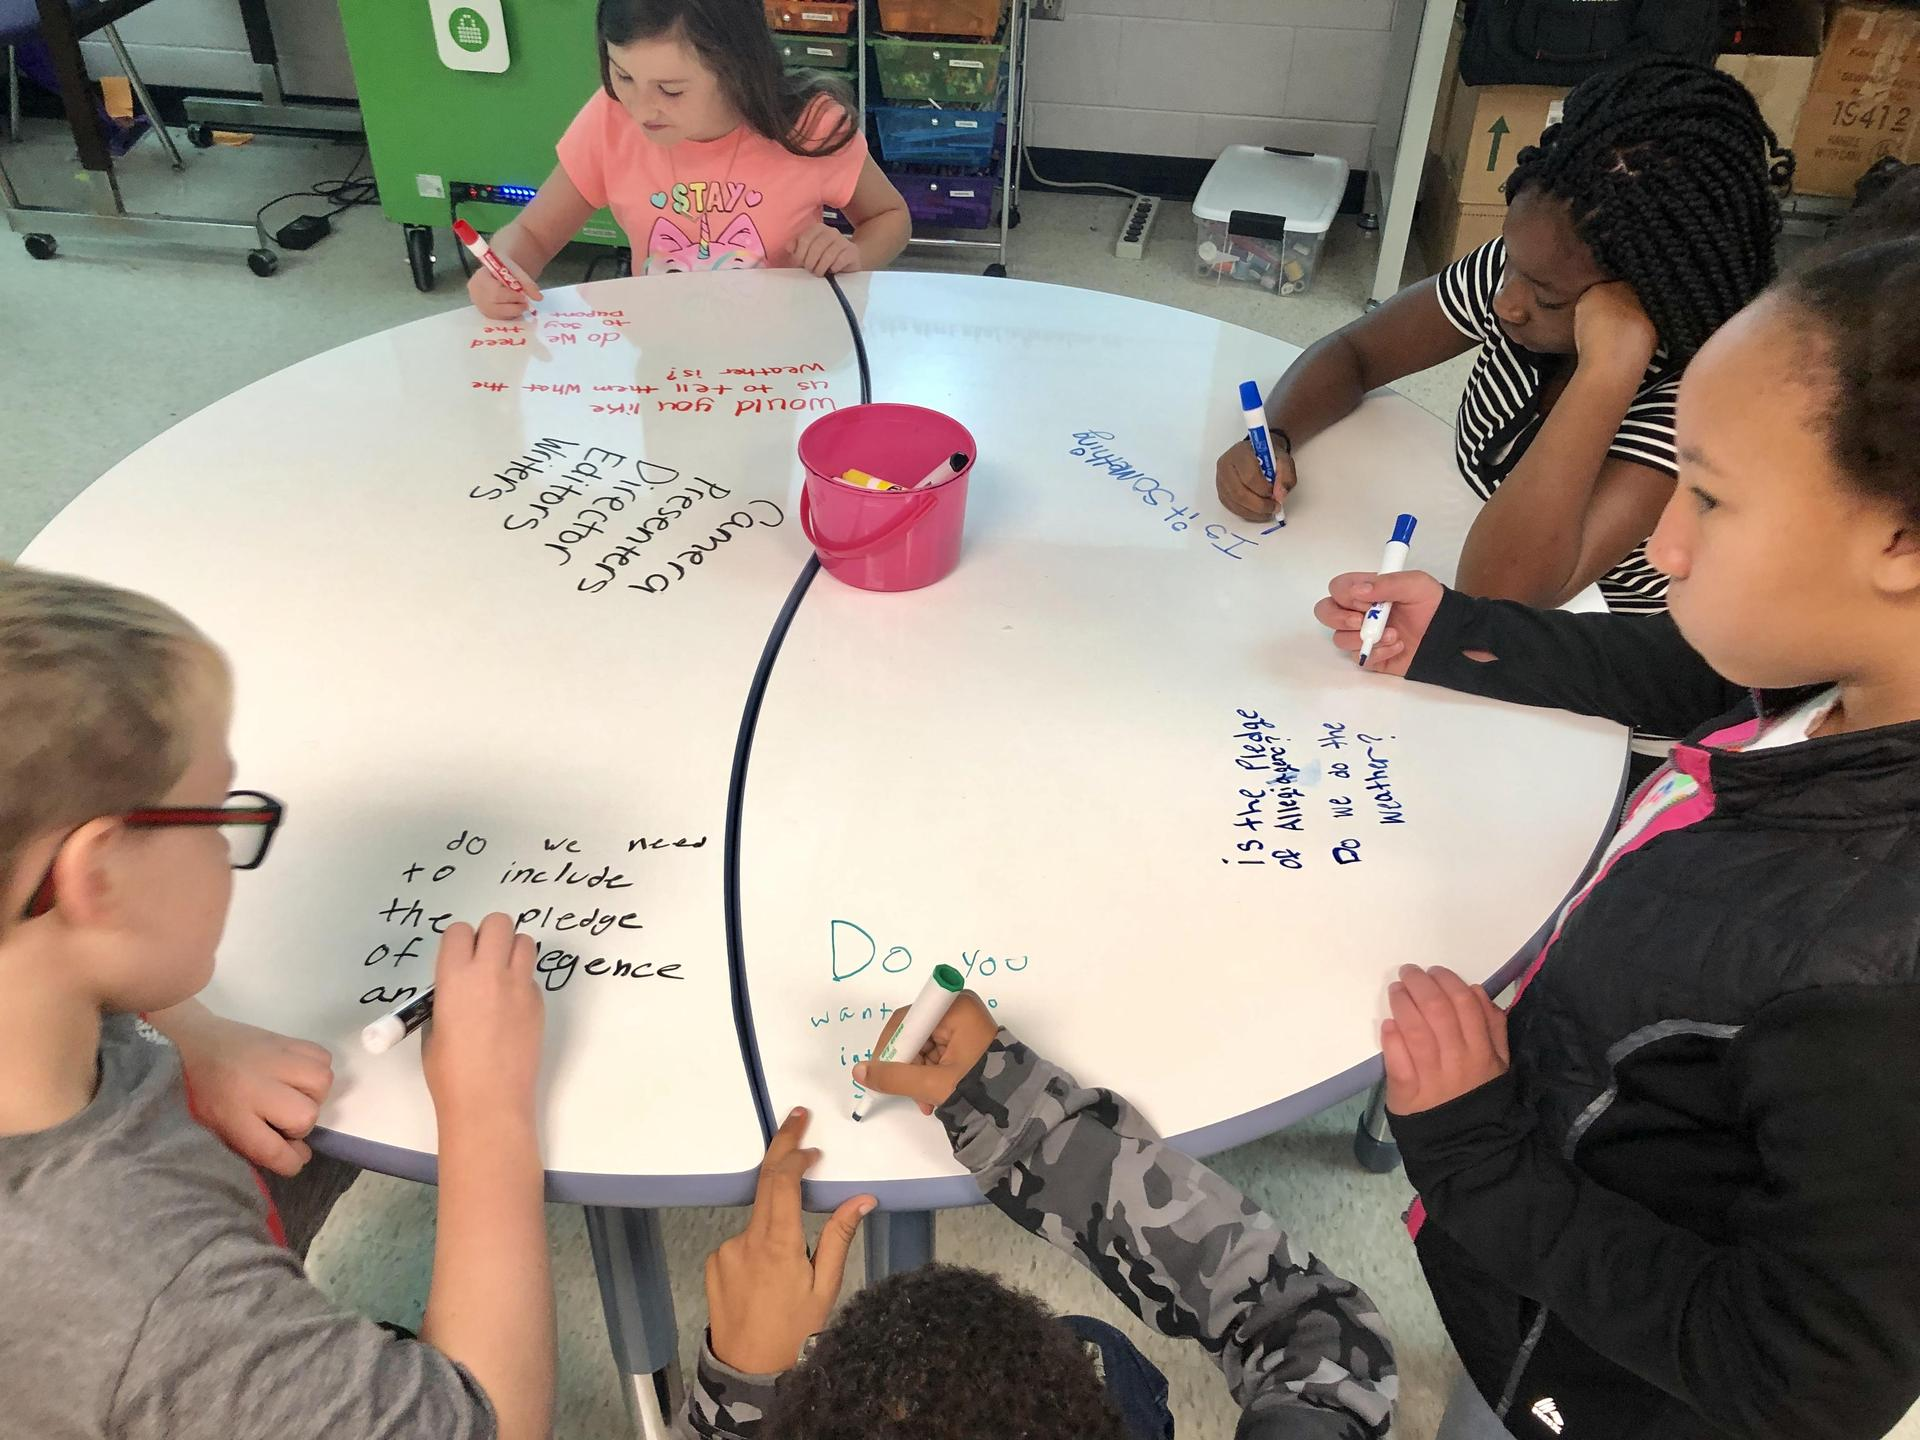 Four children seated and writing on a dry erase table